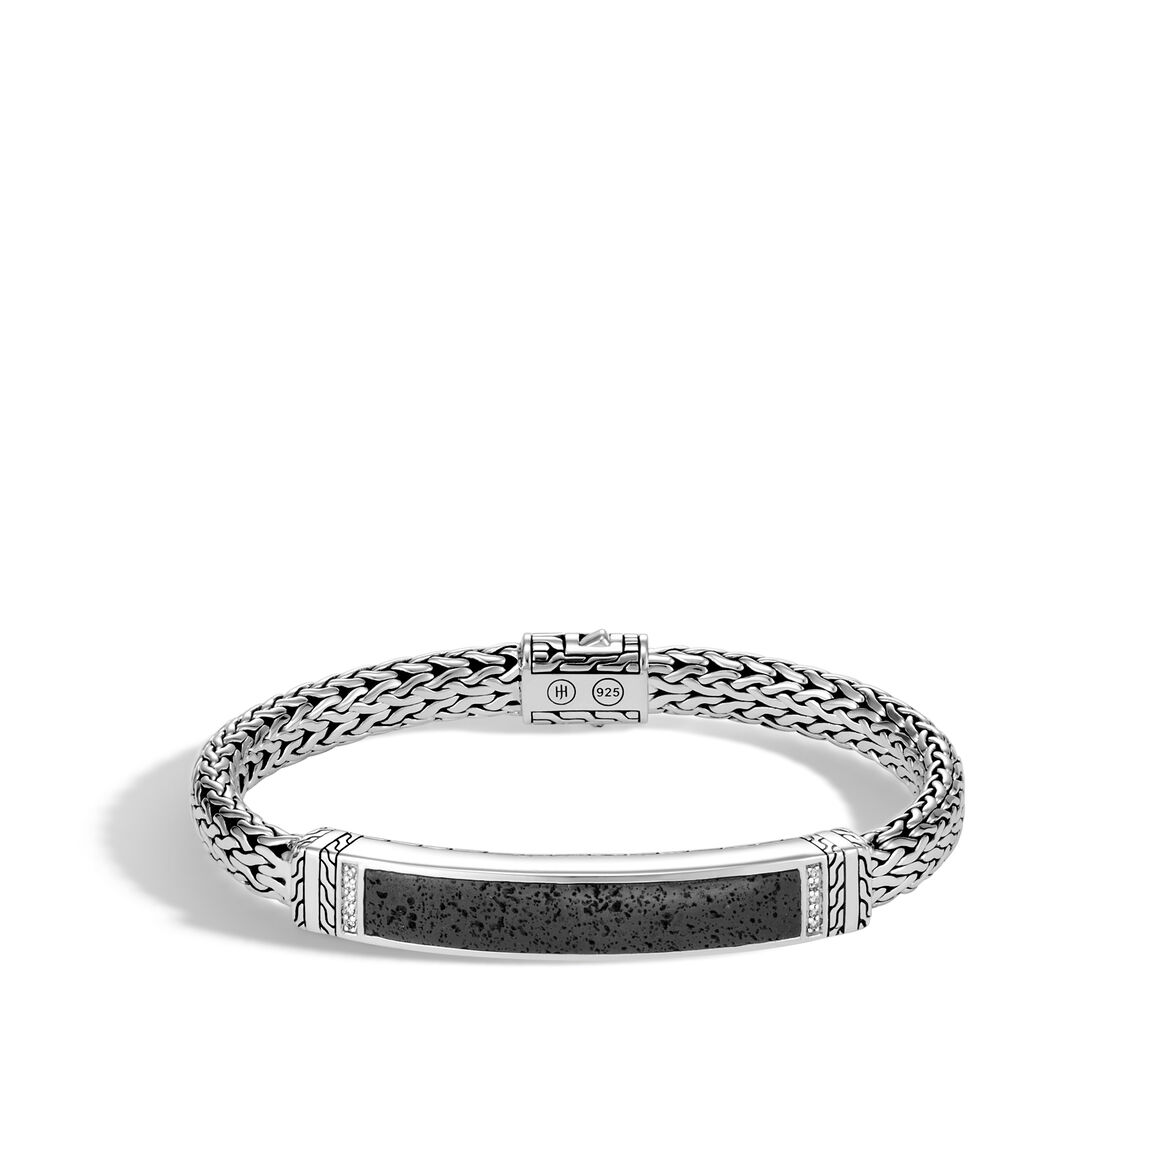 Classic Chain 7.5MM ID Bracelet, Silver, Gemstone, Diamonds